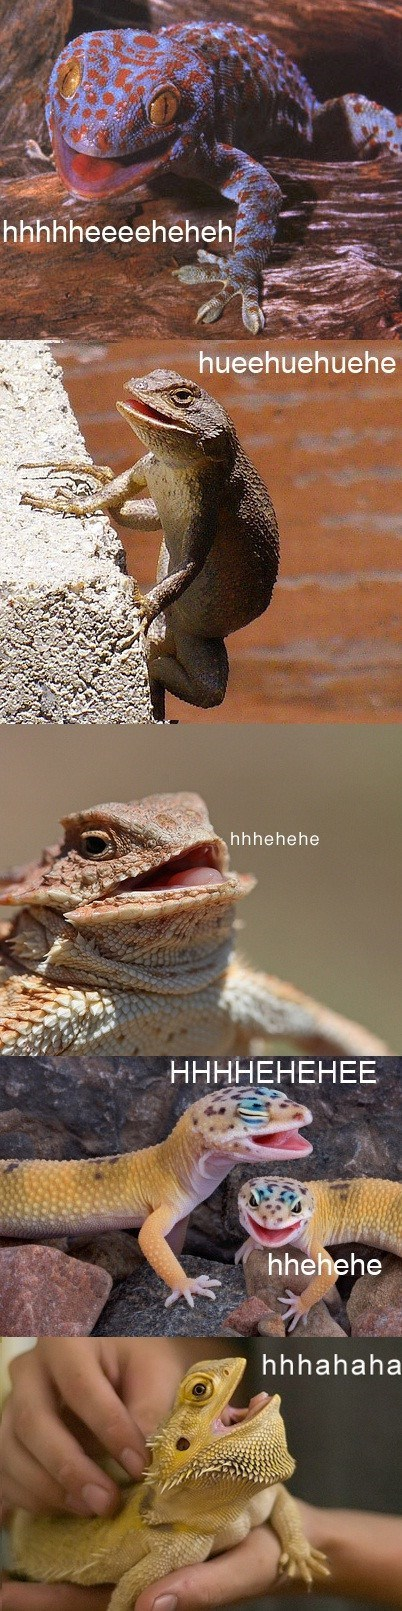 lizards wtf giggle laugh reptiles weird